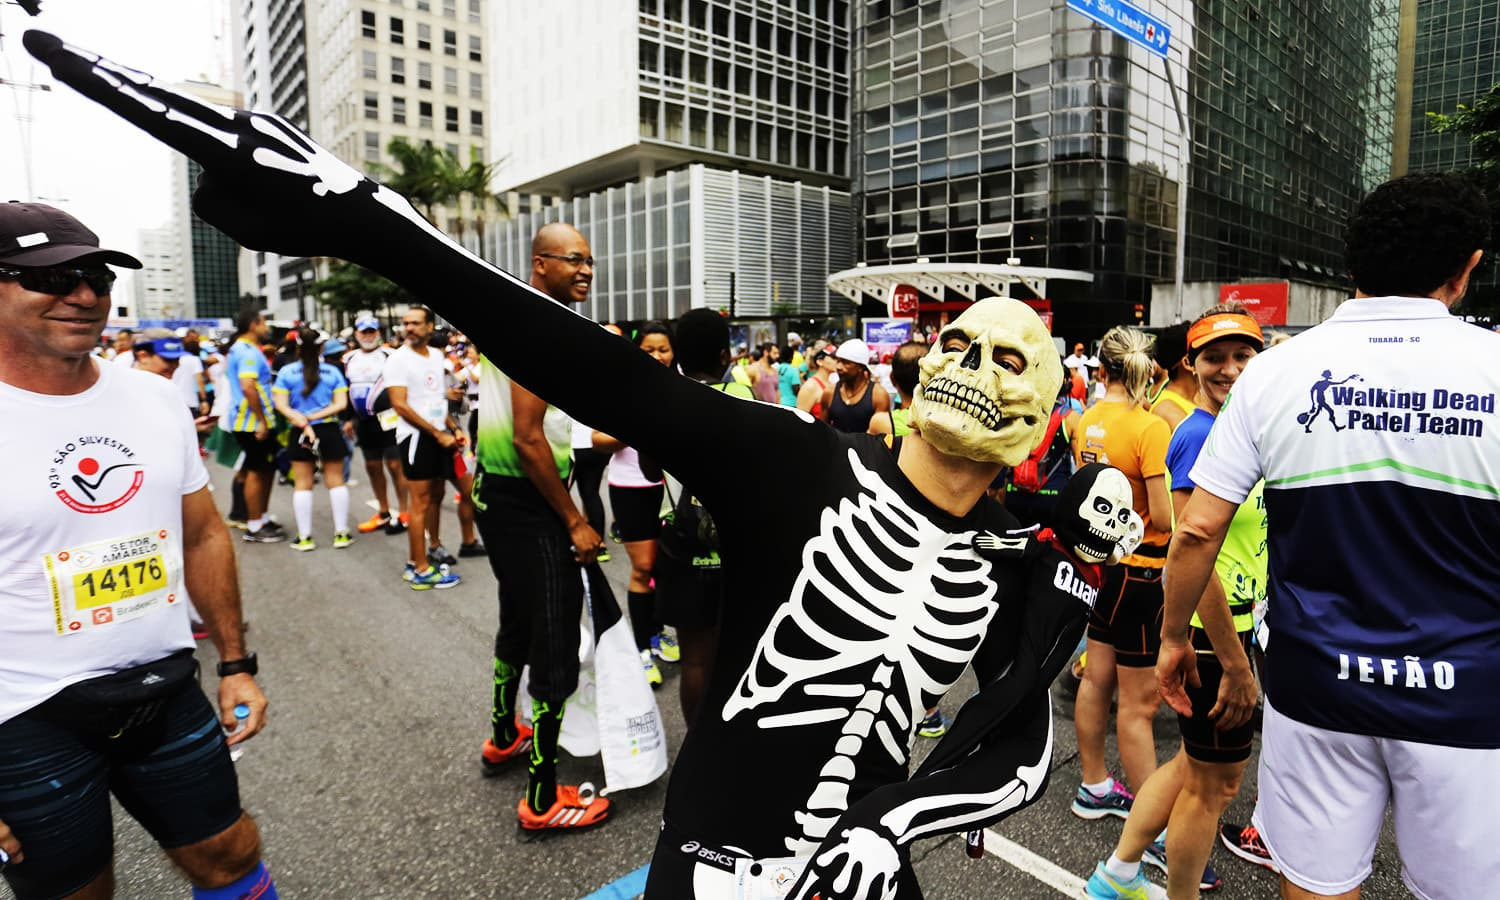 A runner dressed as a skeleton poses for a photo prior to the start of the Sao Silvestre race in Sao Paulo, Brazil, on New Year's Eve.—AP